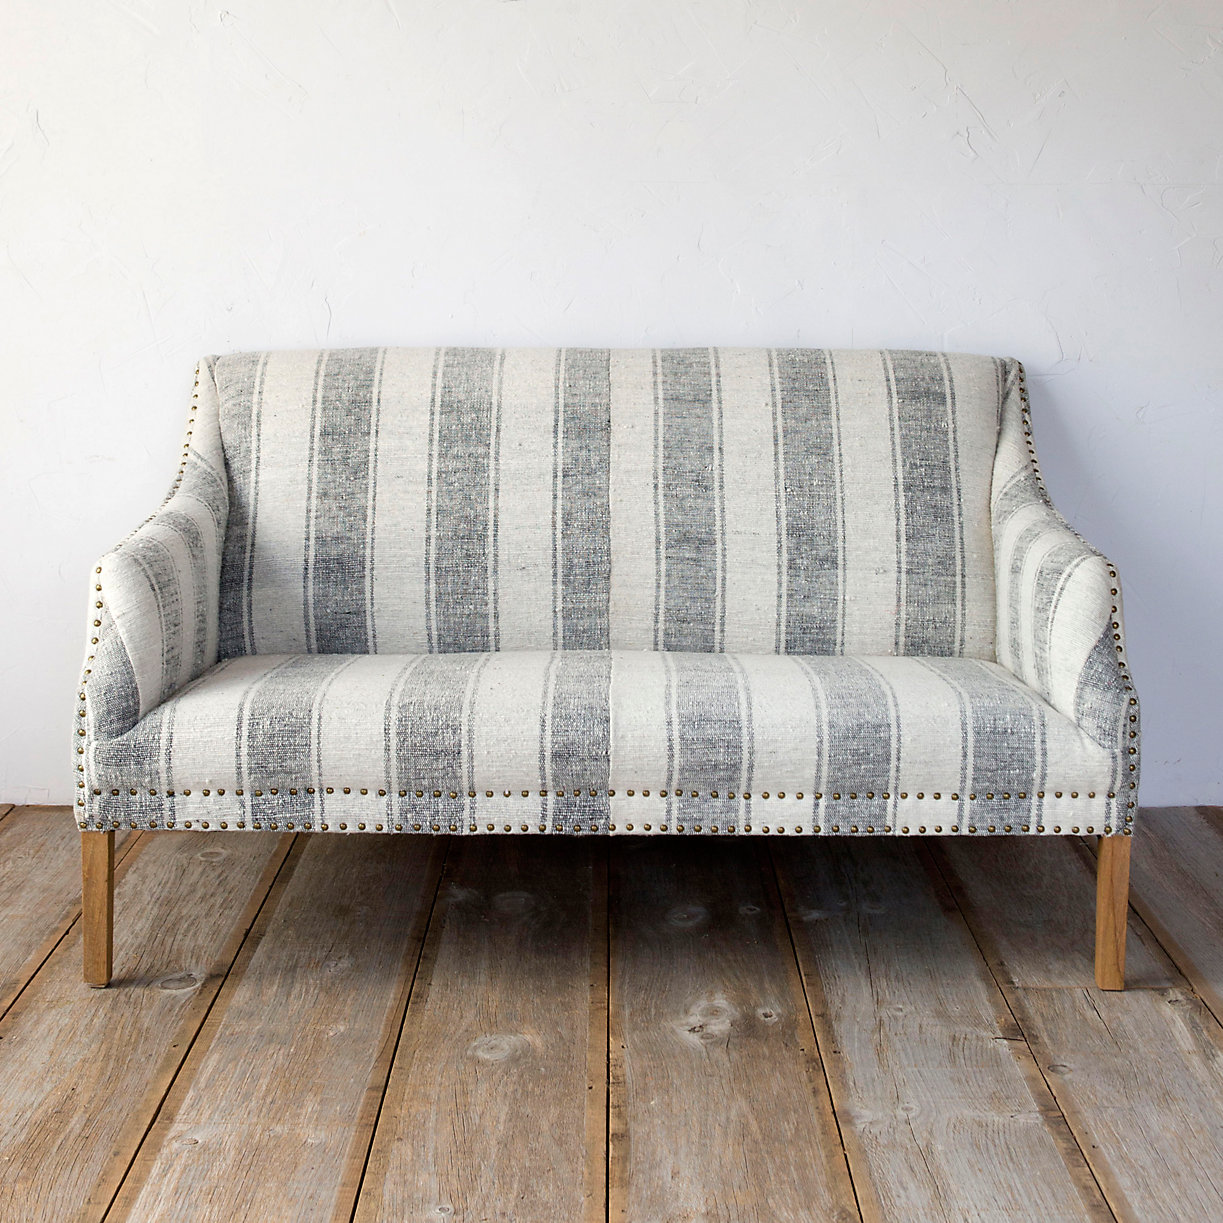 Best furniture for a shabby chic living room - Telas para tapizar un sofa ...